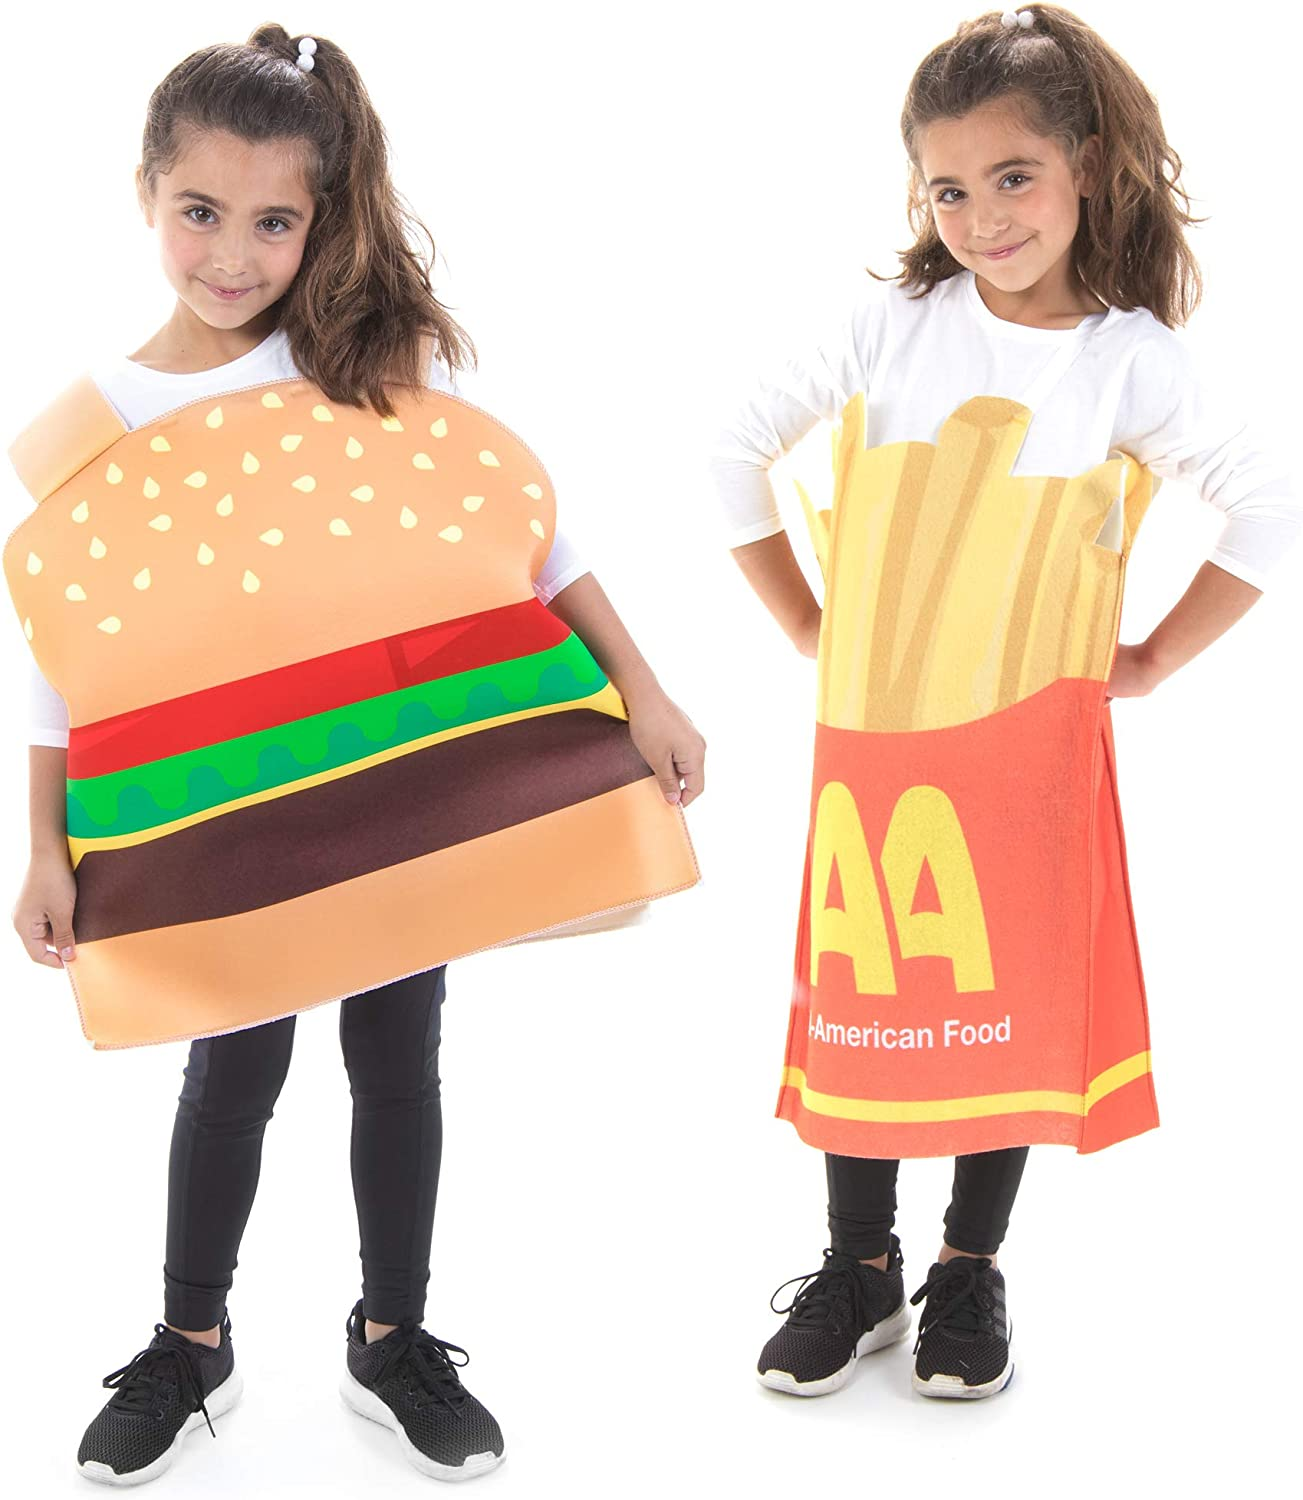 Kids Burger & Fries Best Friends Halloween Costumes Funny Food Suits 2-pk